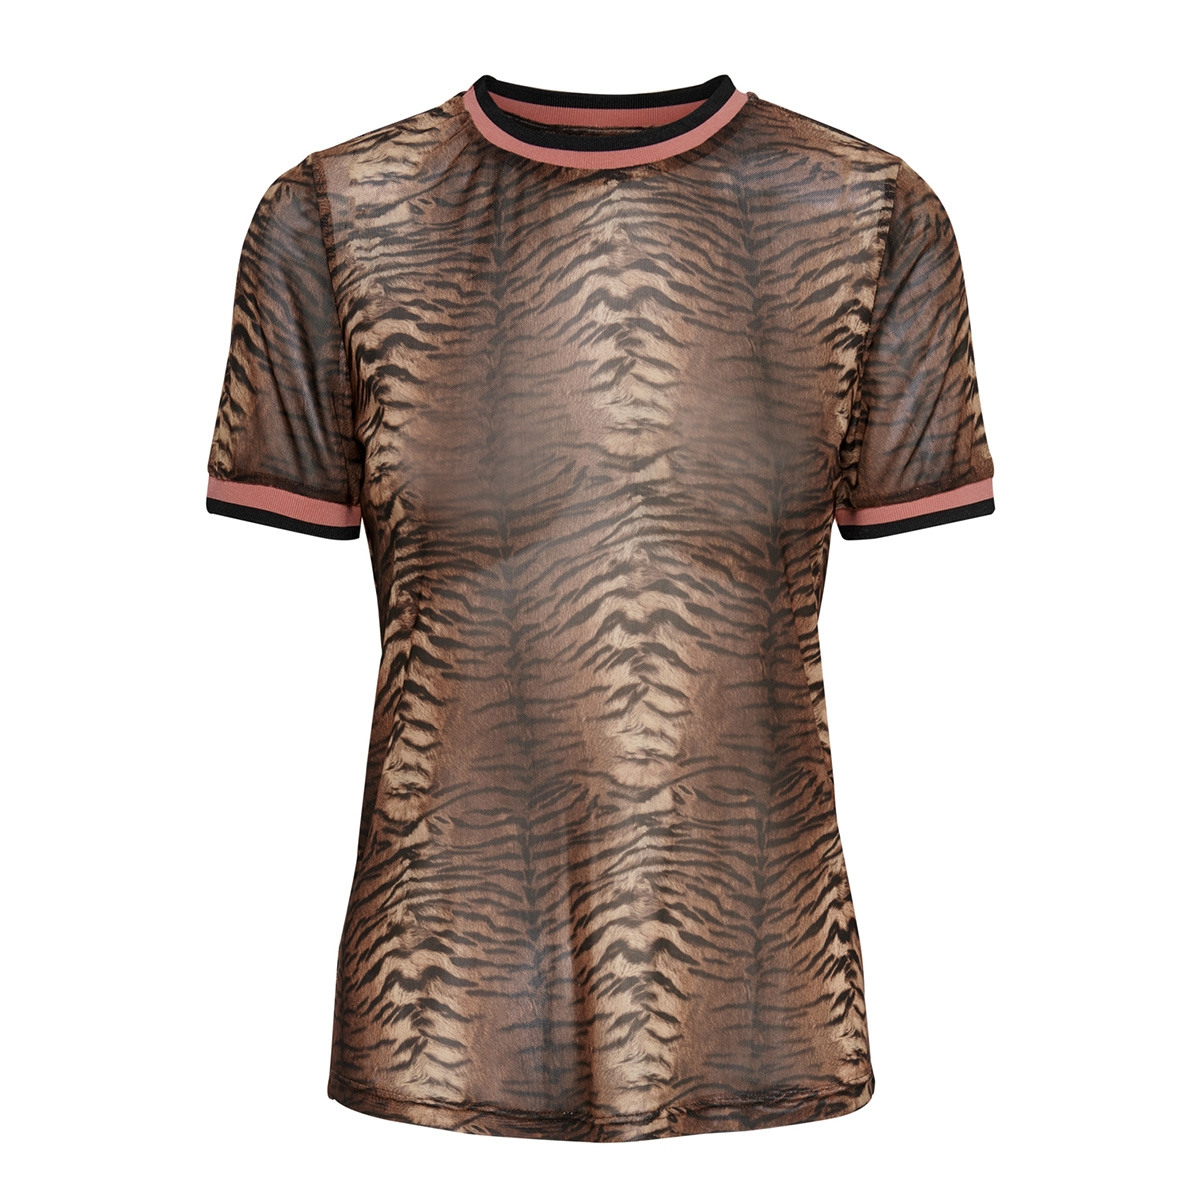 onlvera s/s top jrs 15187955 only t-shirt black/tiger